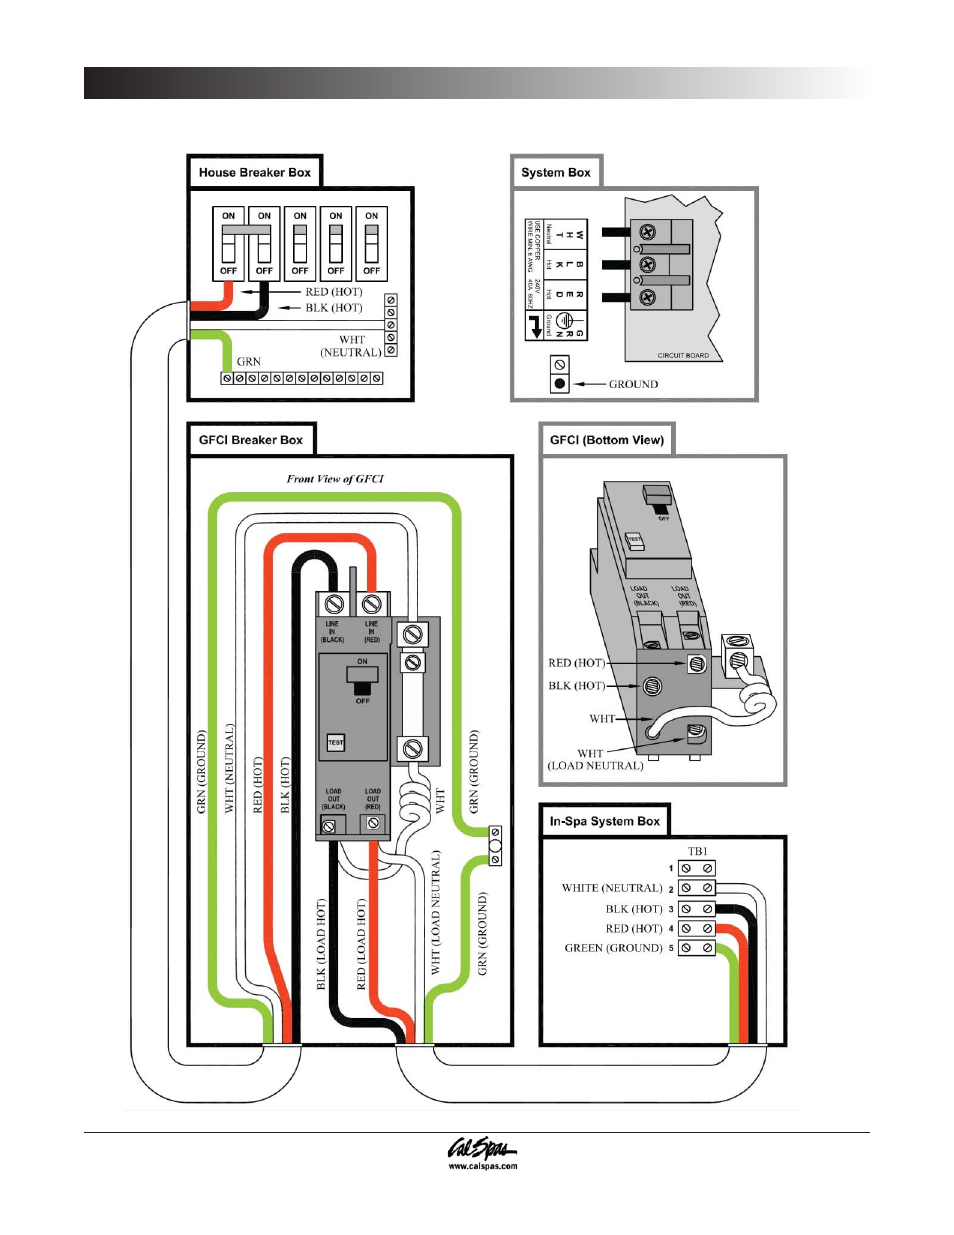 cal spa wiring diagram install go cal spa wiring diagram